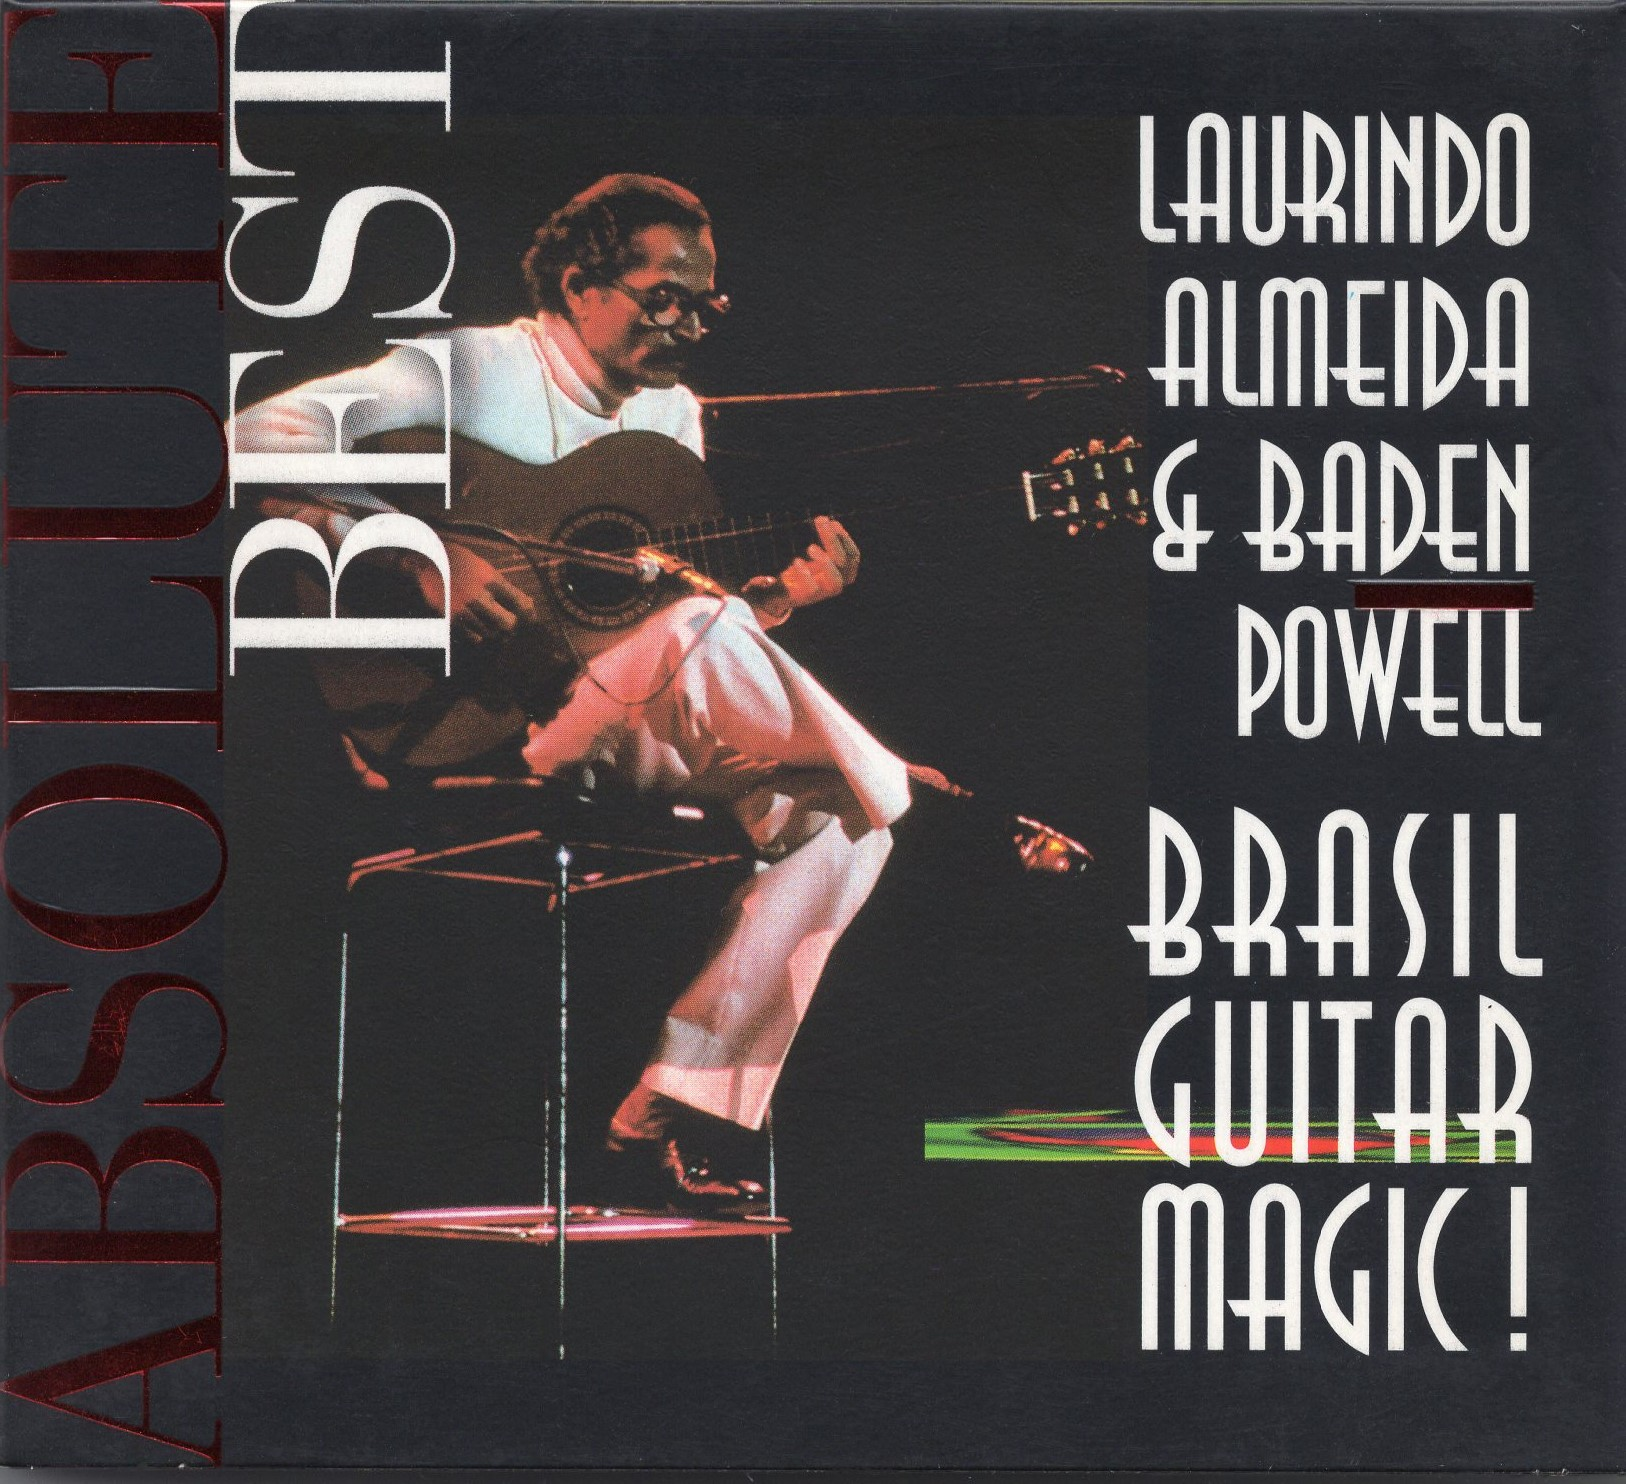 """Absolute Best"" Baden Powell, Laurindo Almeda"